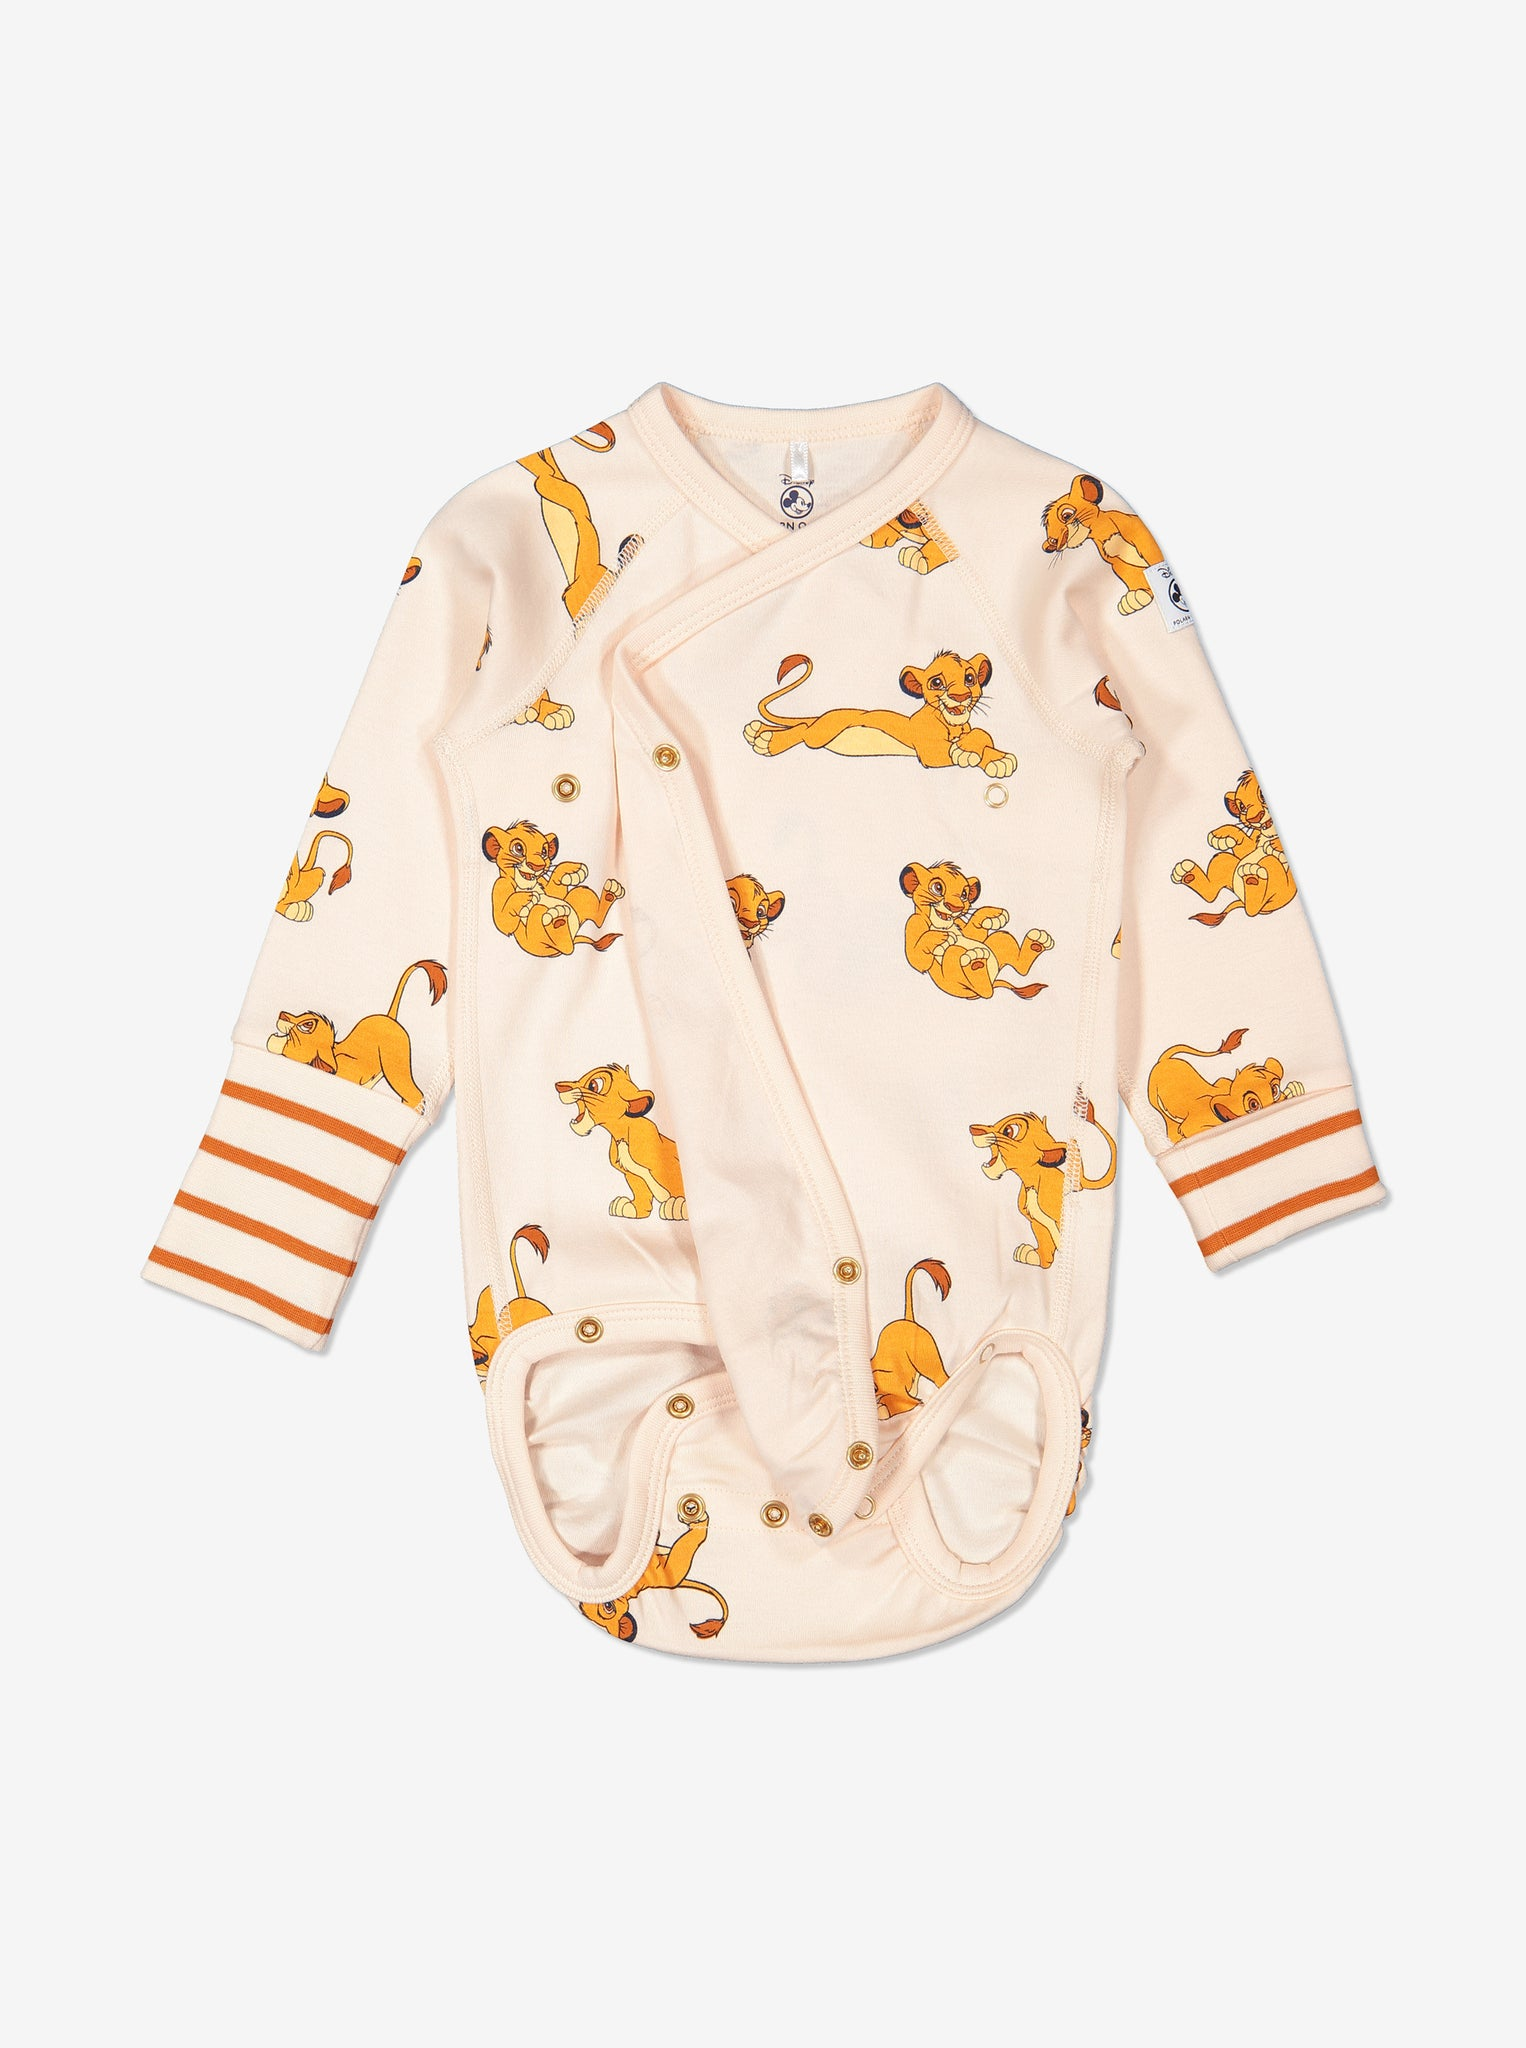 Lion King Simba Newborn Babygrow